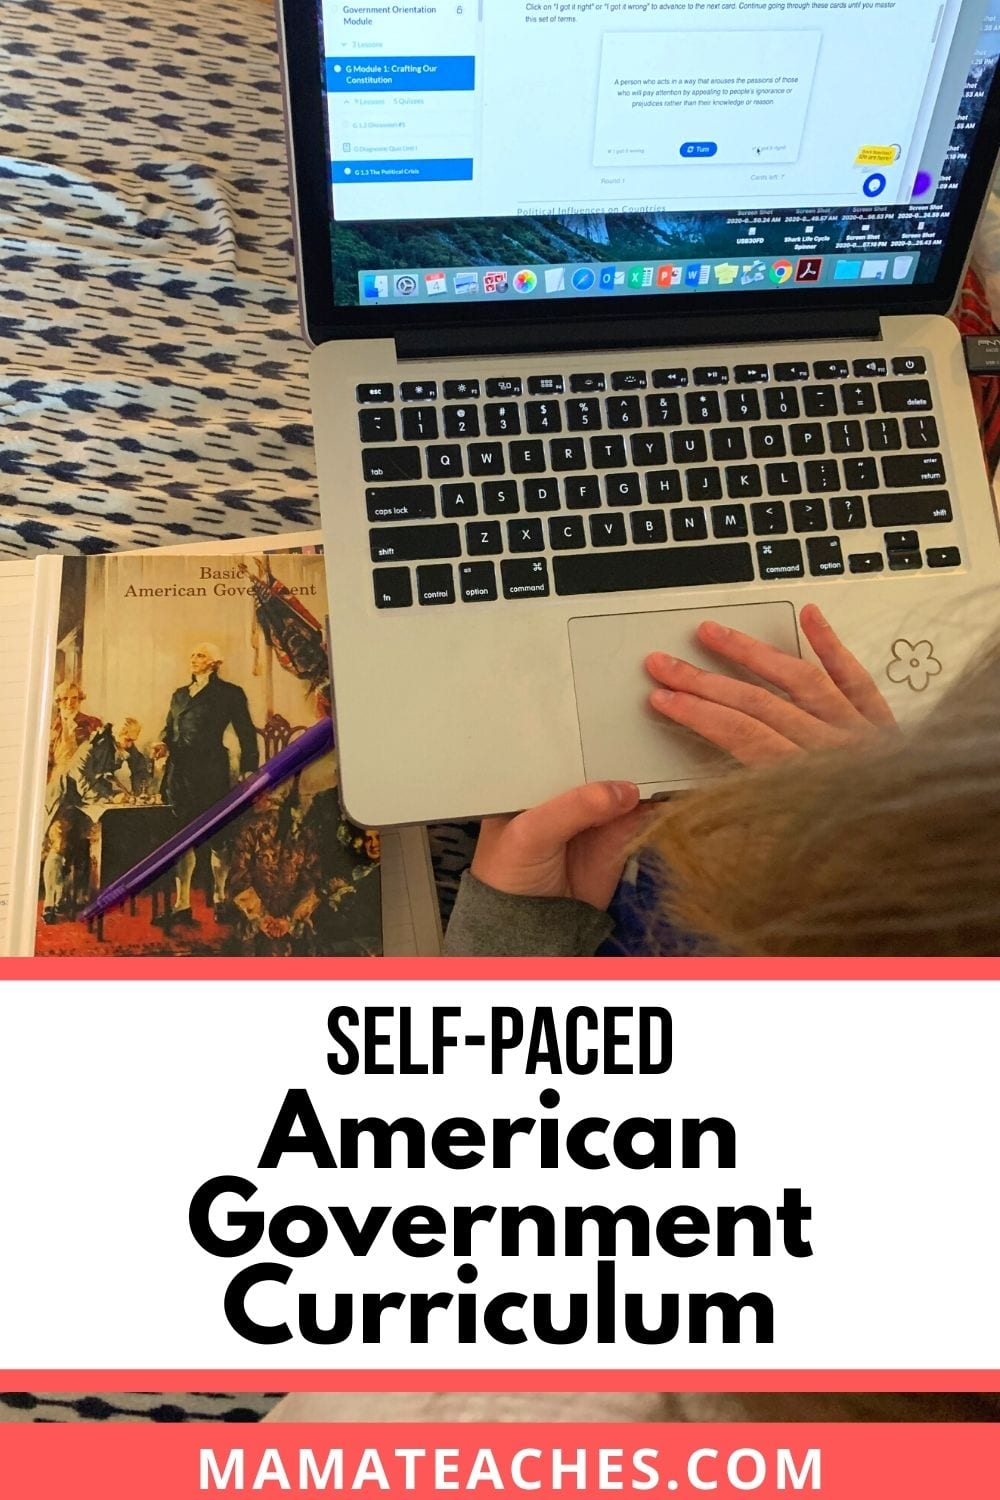 Self-Paced American Government Curriculum for Homeschoolers